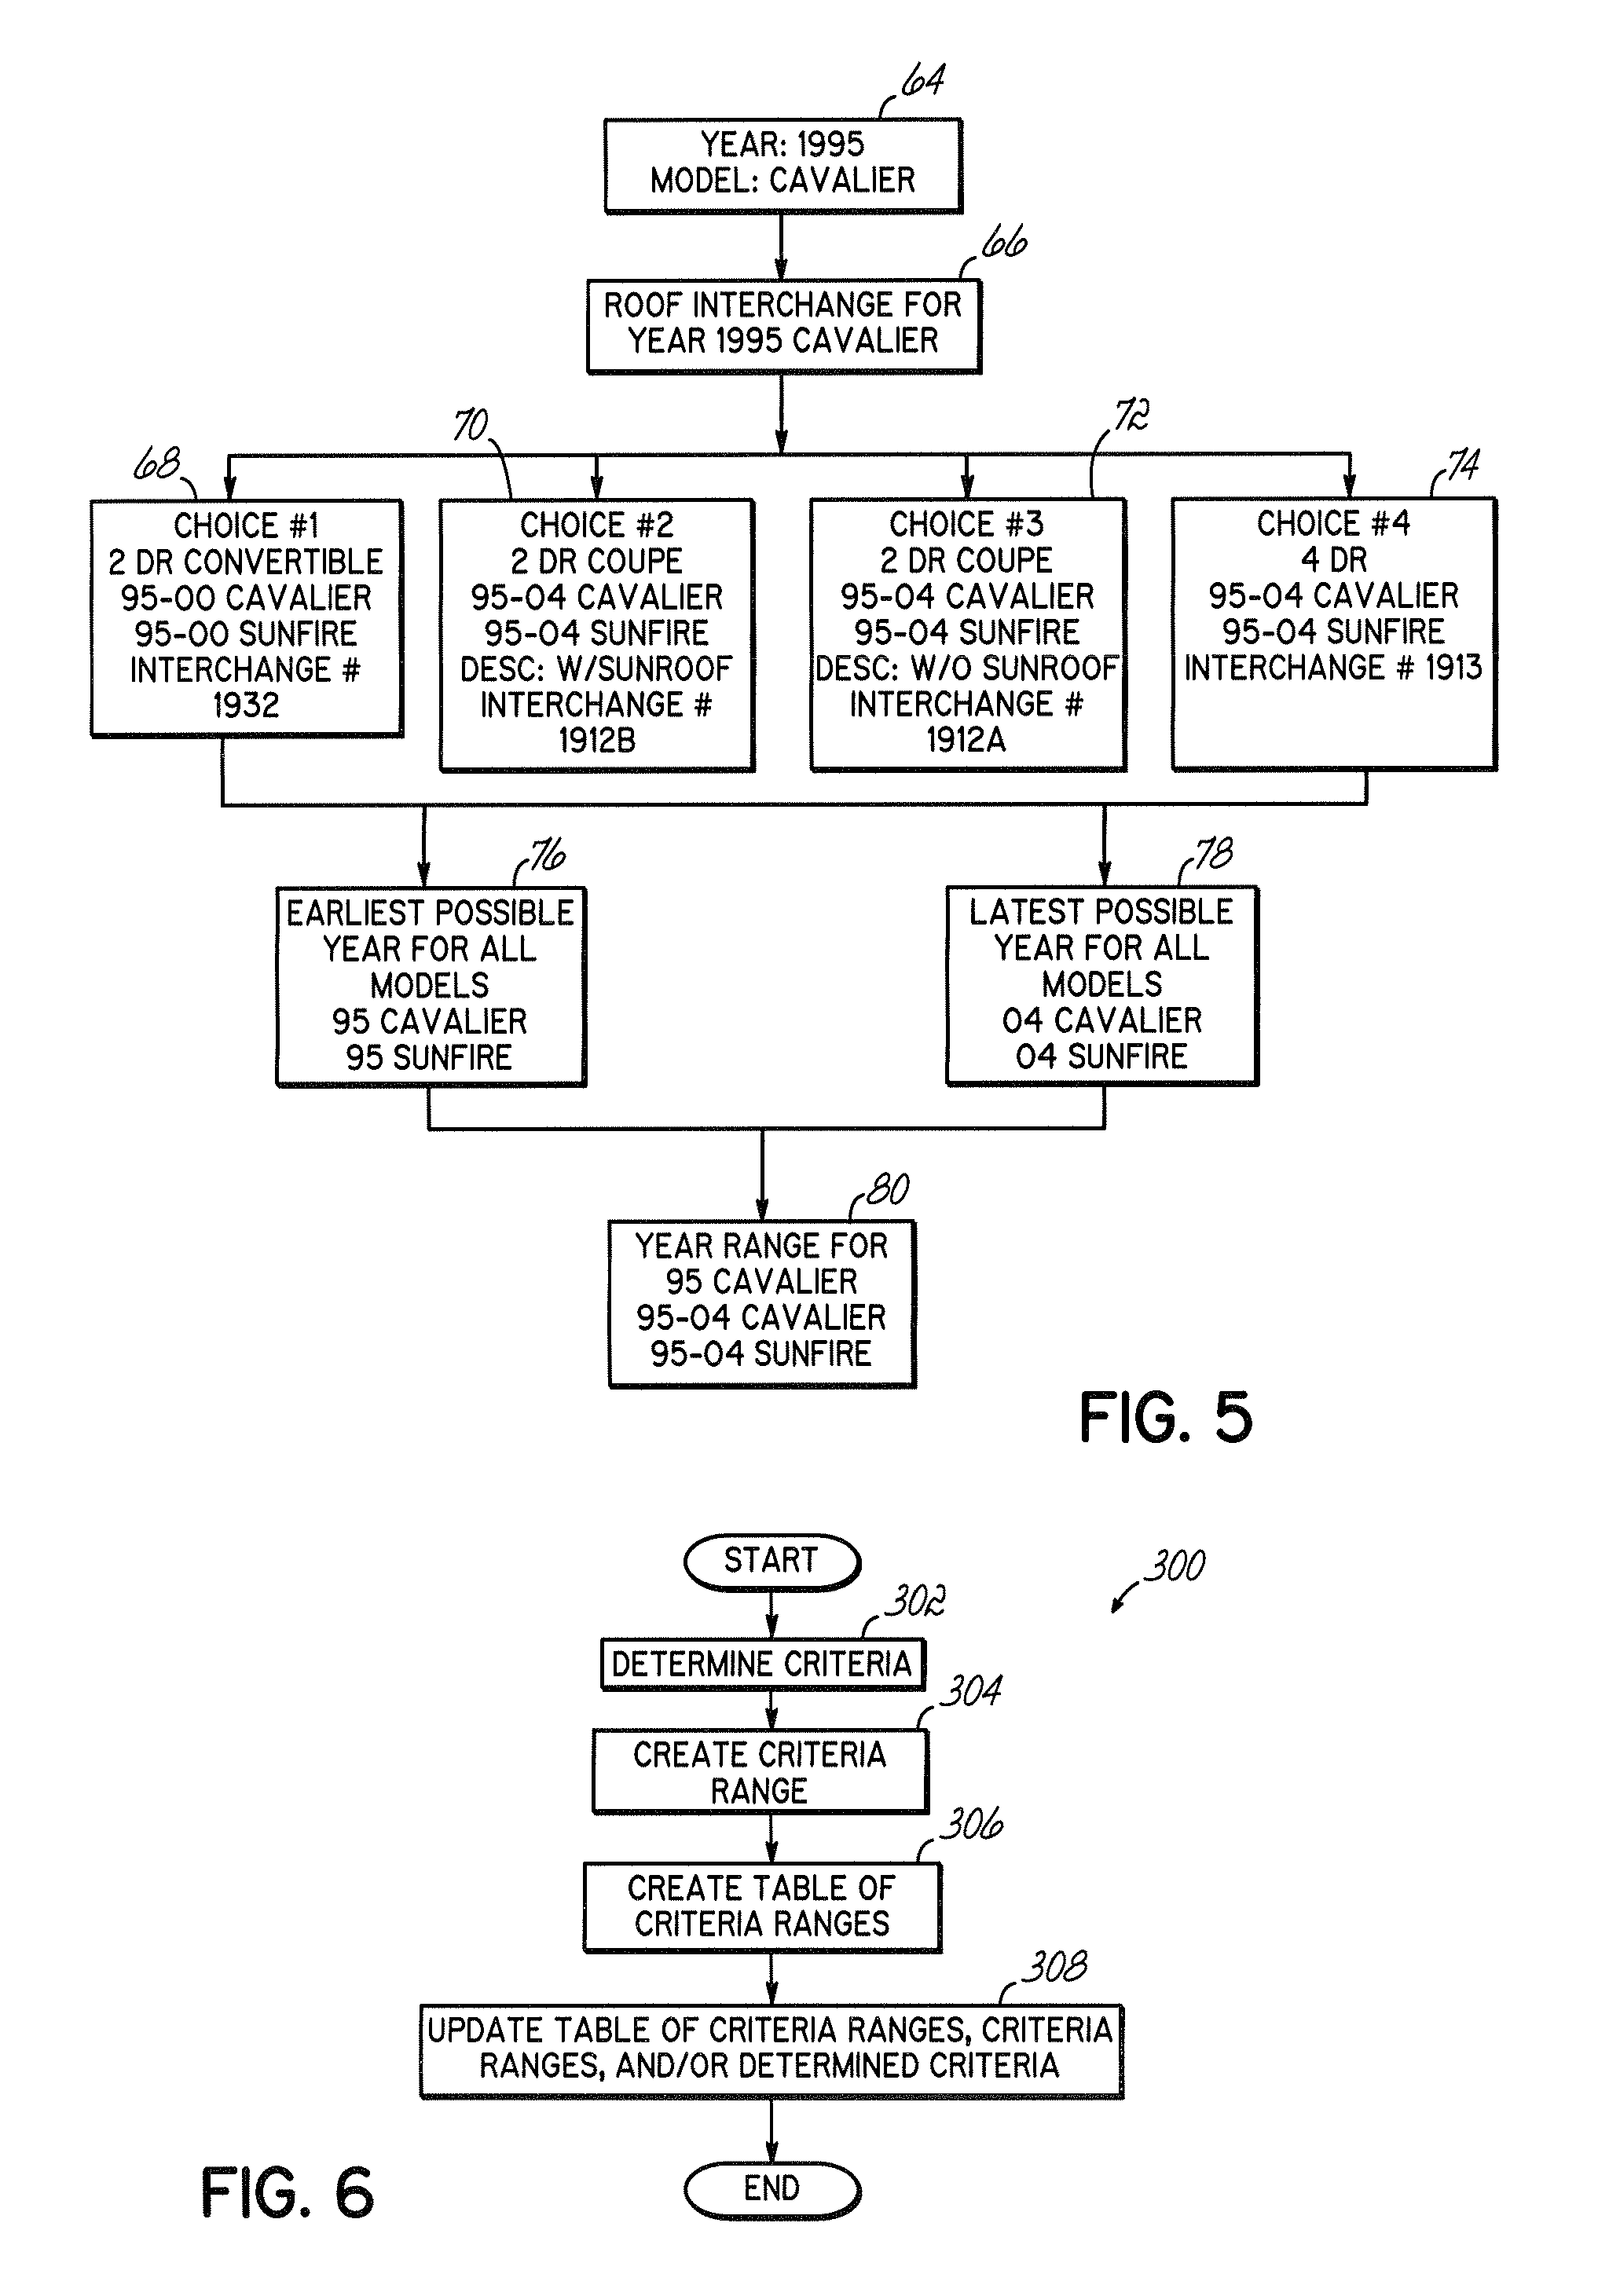 Patent US8458056 - Determining criteria for selecting a donor